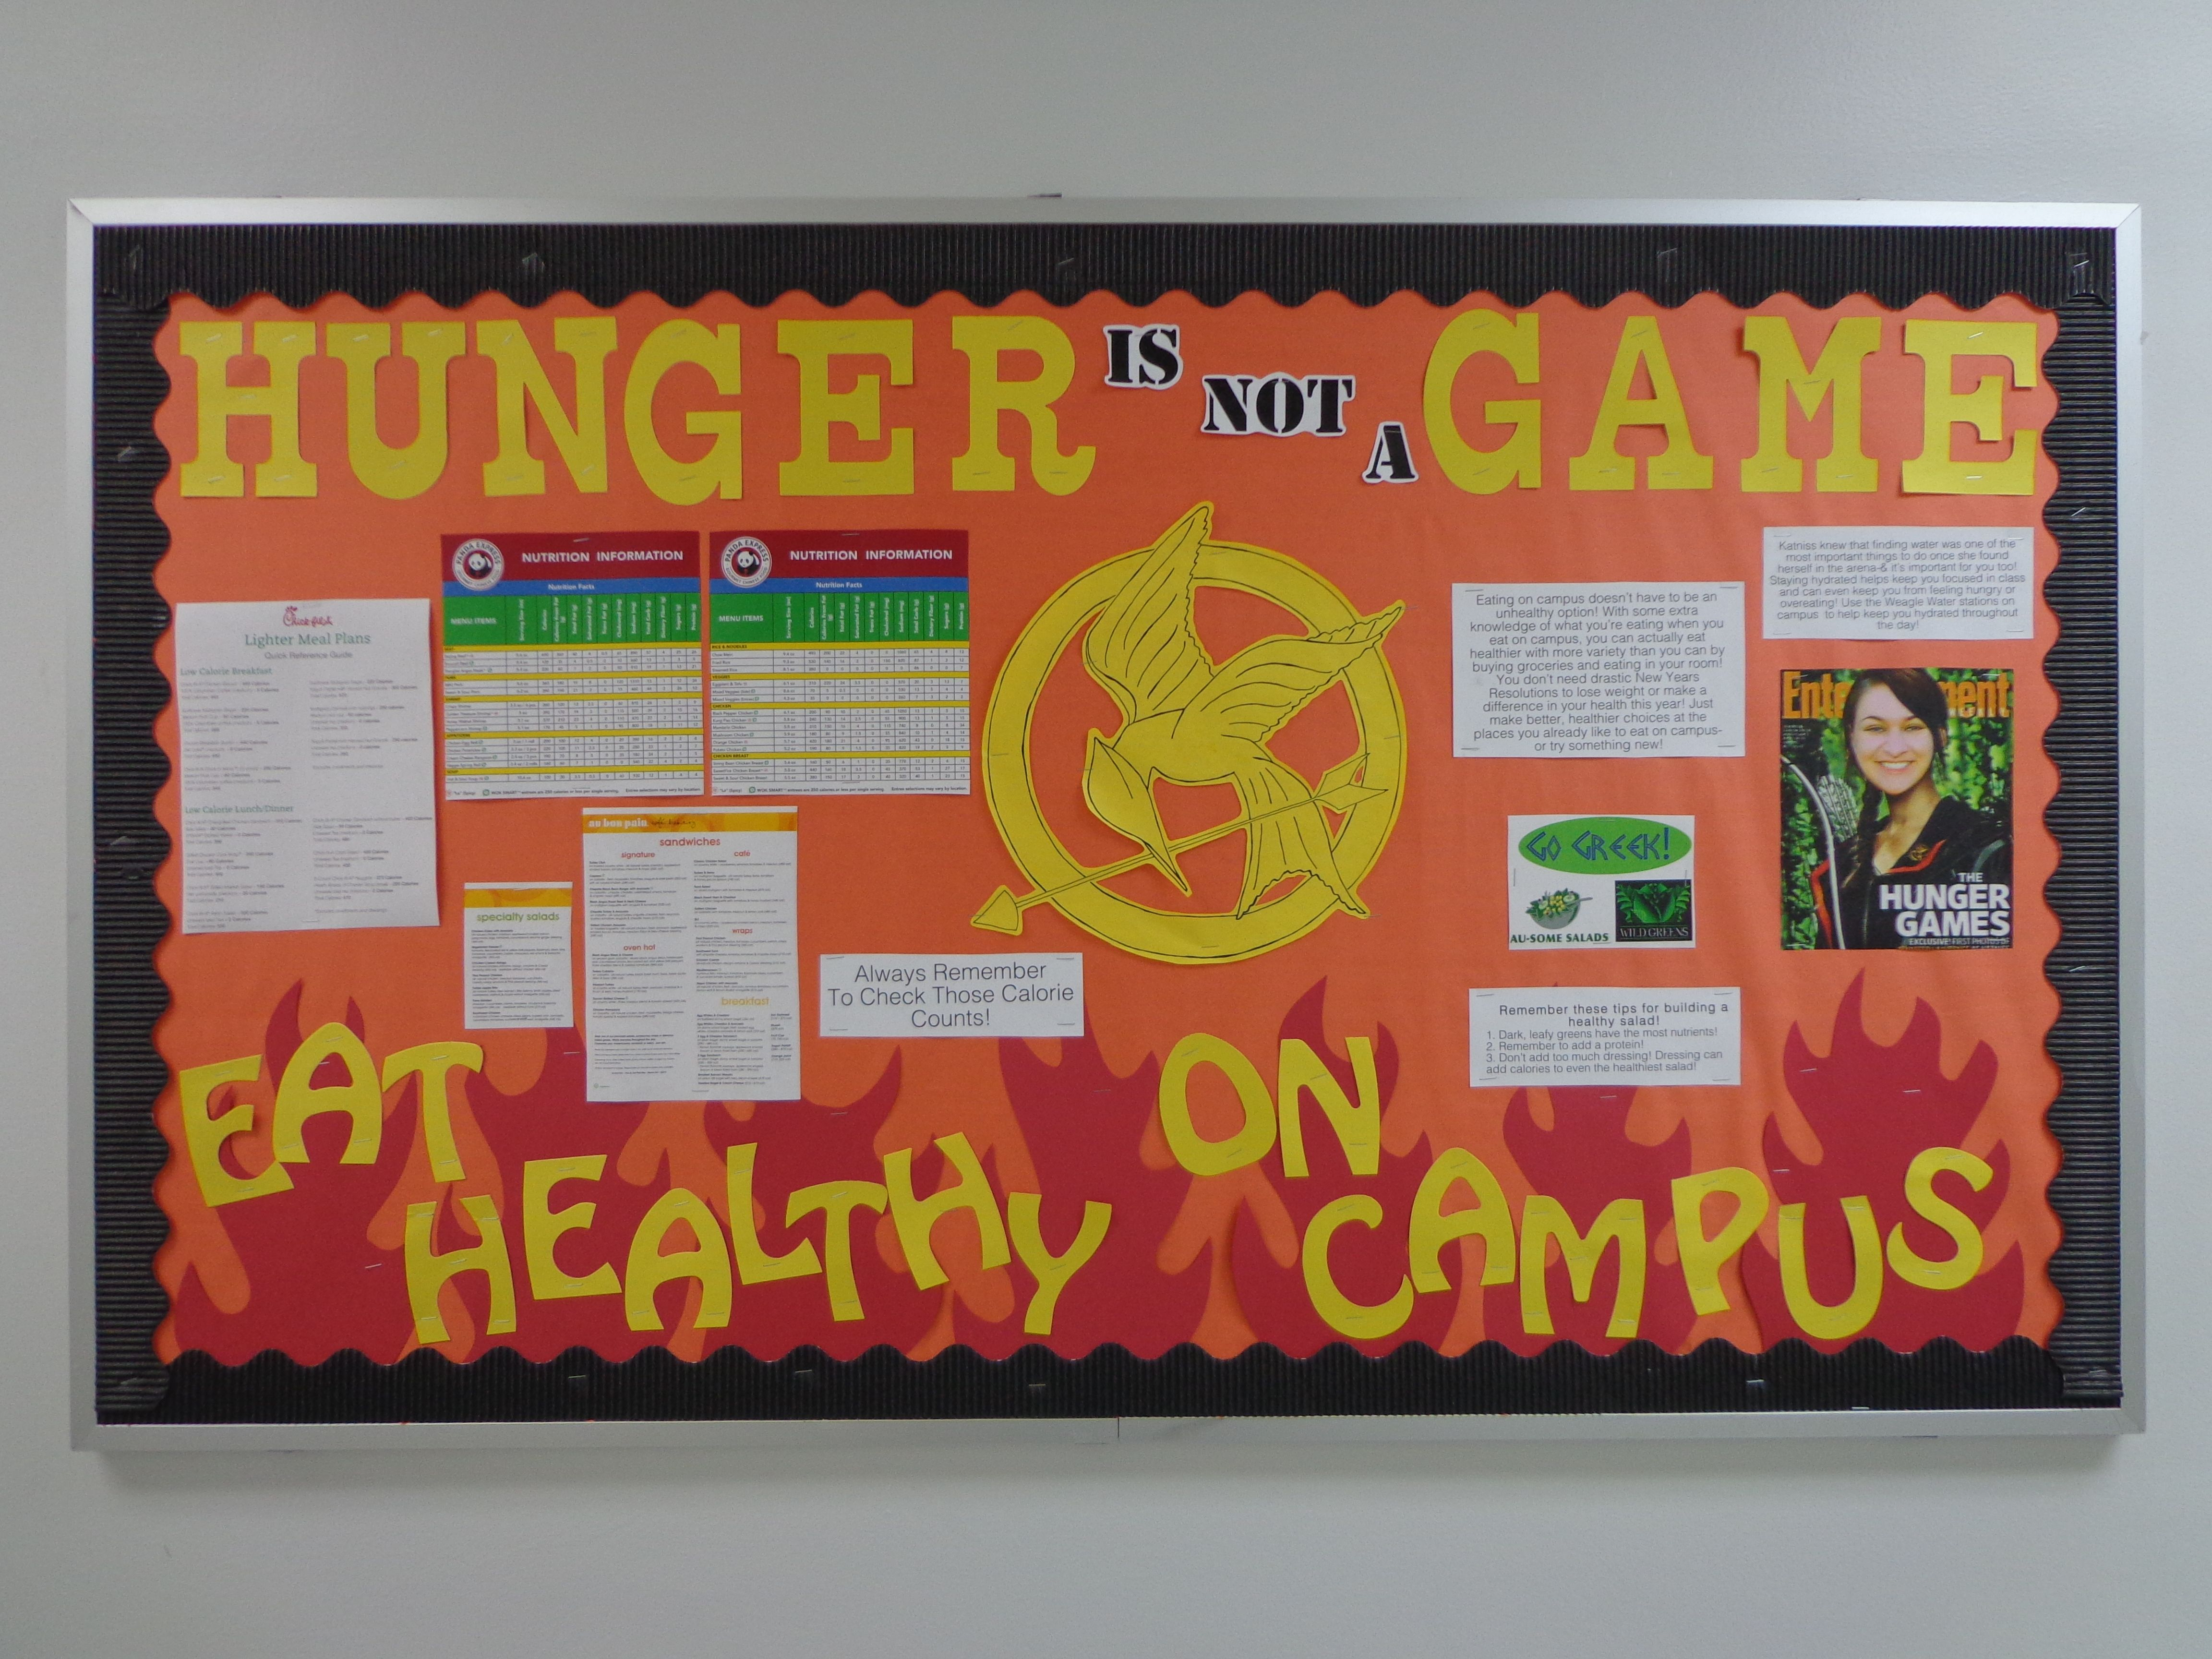 Resident Assistant Bulletin Board For Healthy Eating On Campus